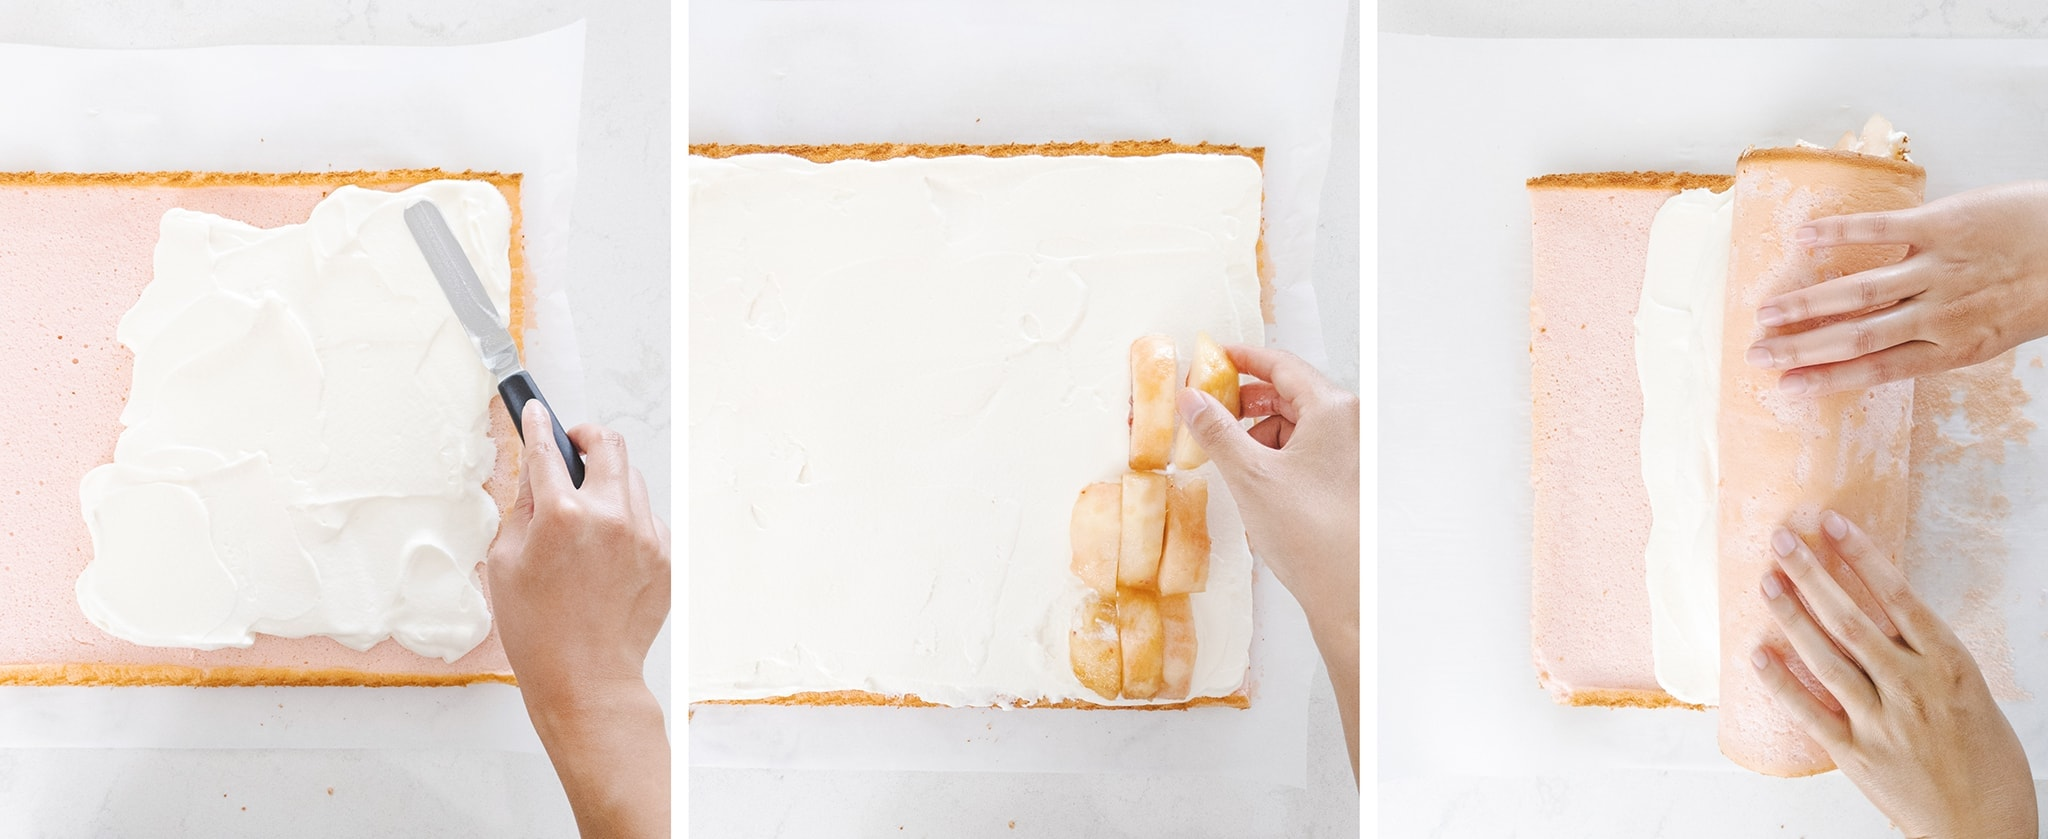 Assembling and rolling a white peach swiss roll with whipped cream and peach slices